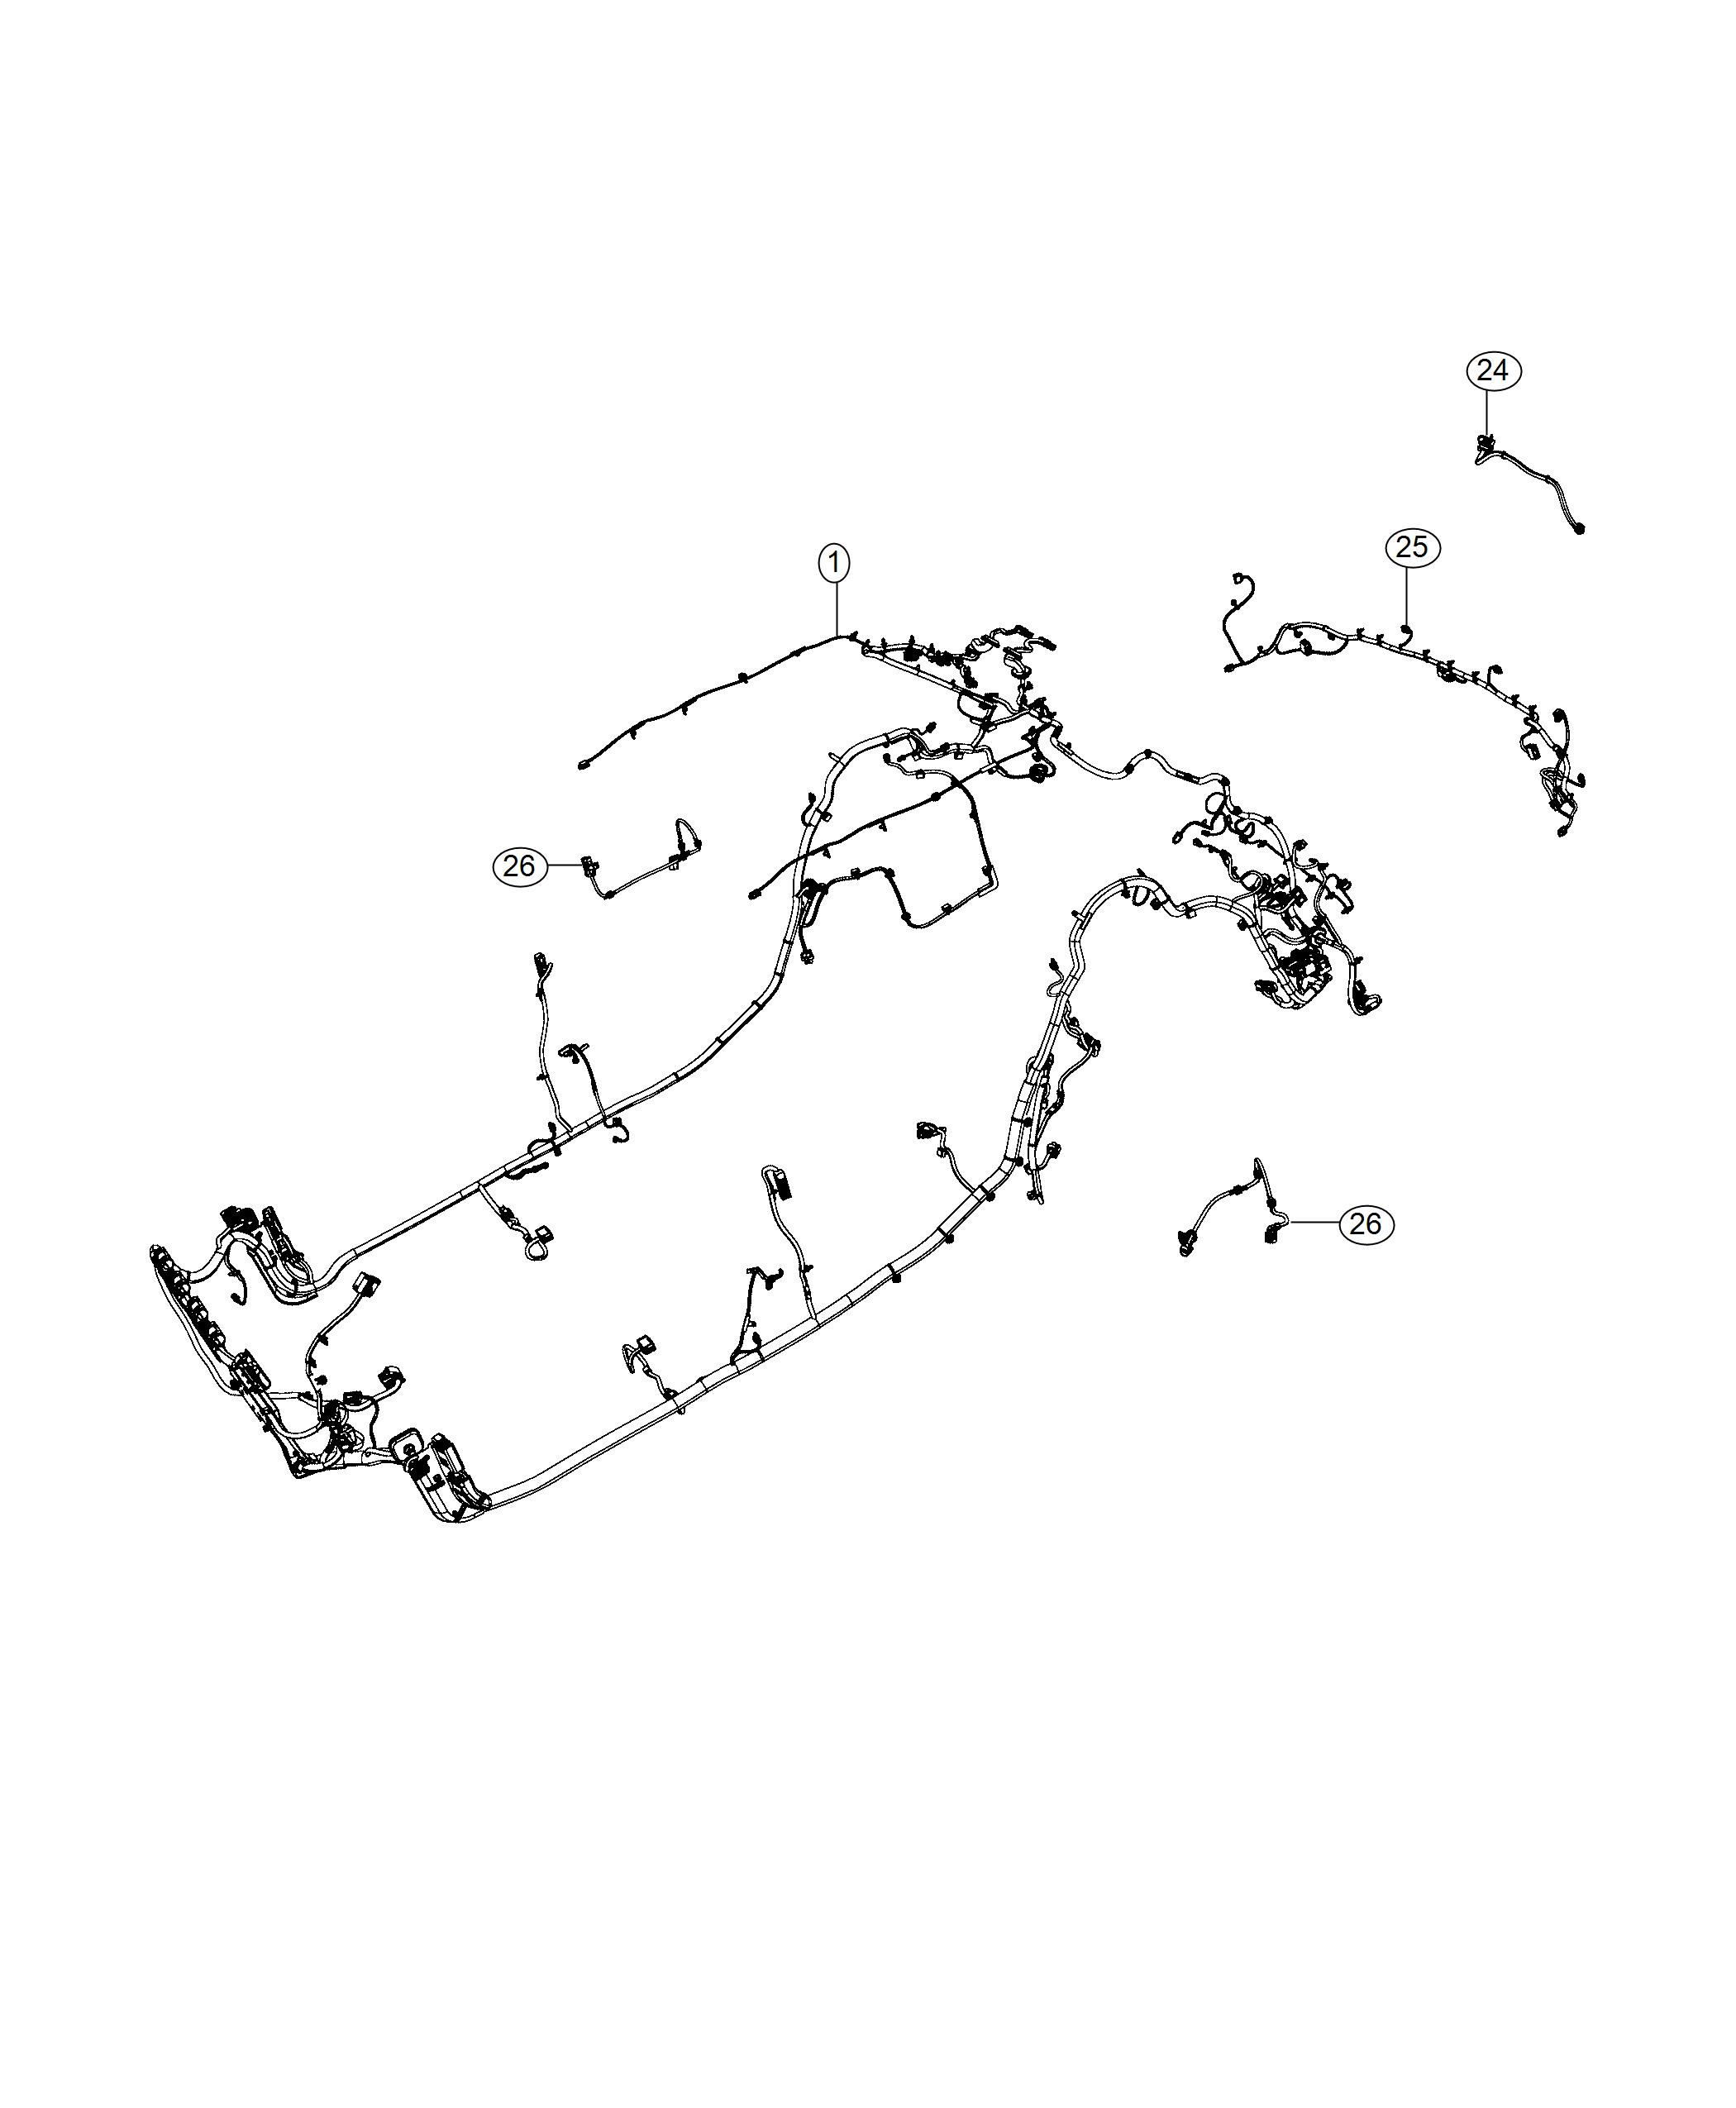 Jeep Compass Wiring. Body. [selec-terrain (tm) system], [6